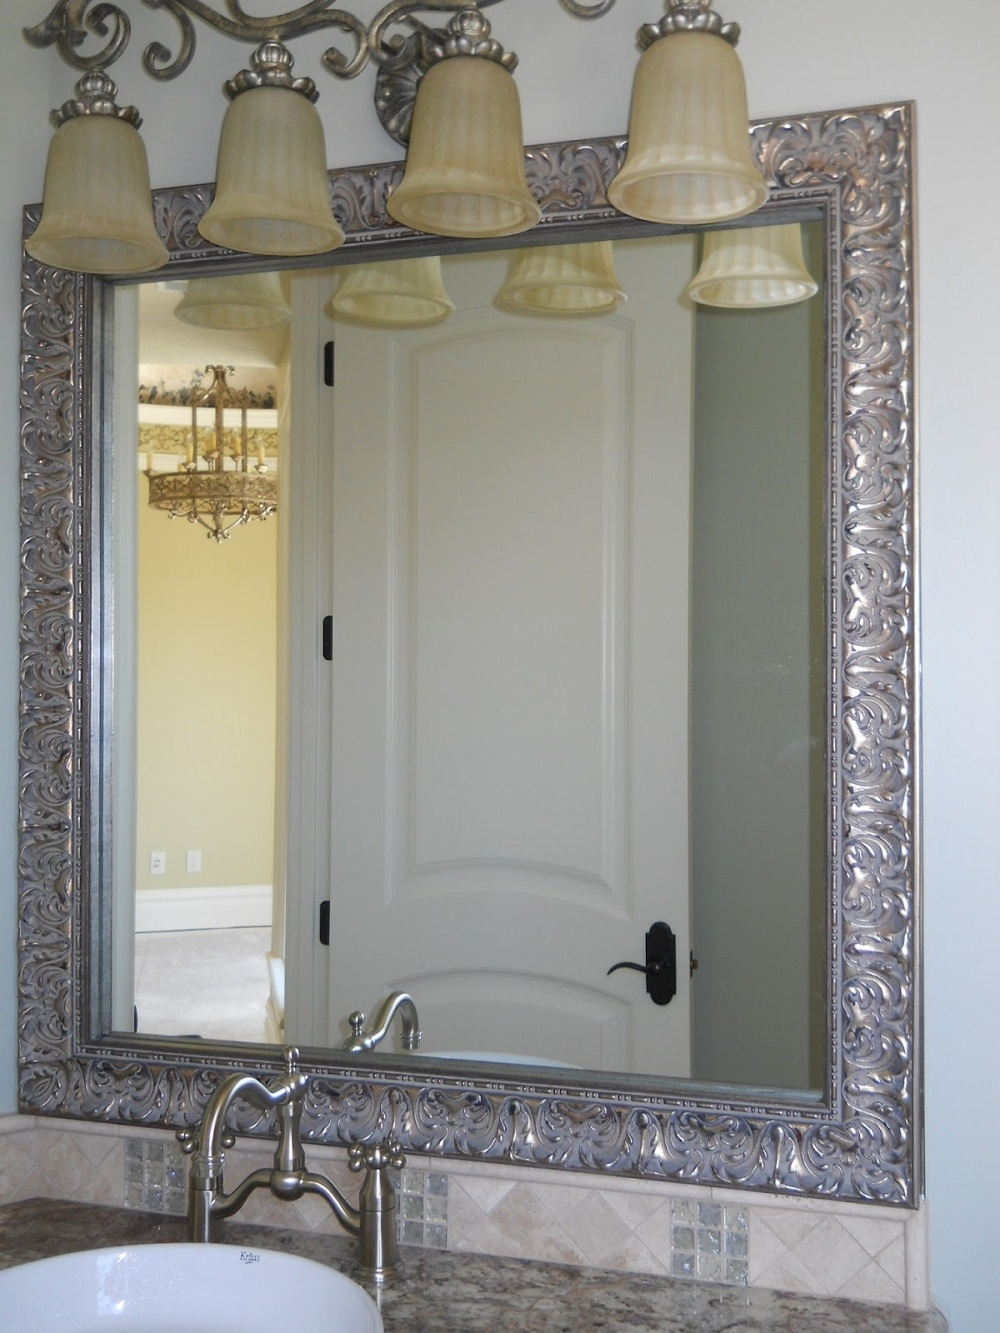 Huws Gray Bathroom Mirrors